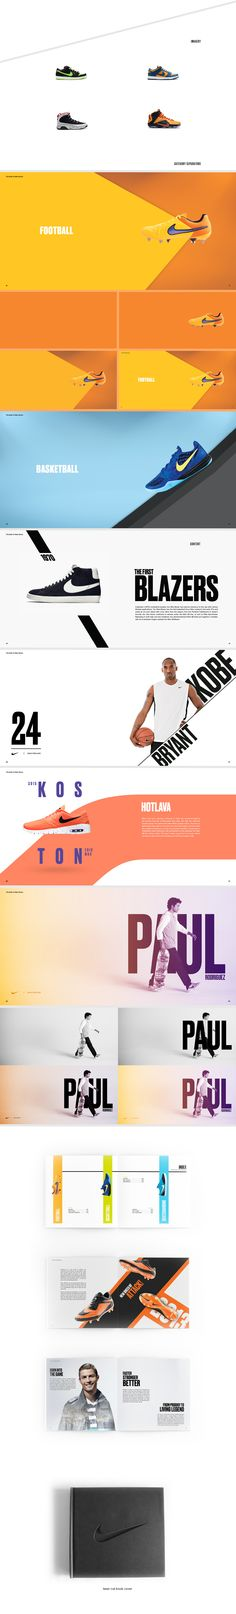 The Best of Nike Football, Basketball & Skateboarding on Behance